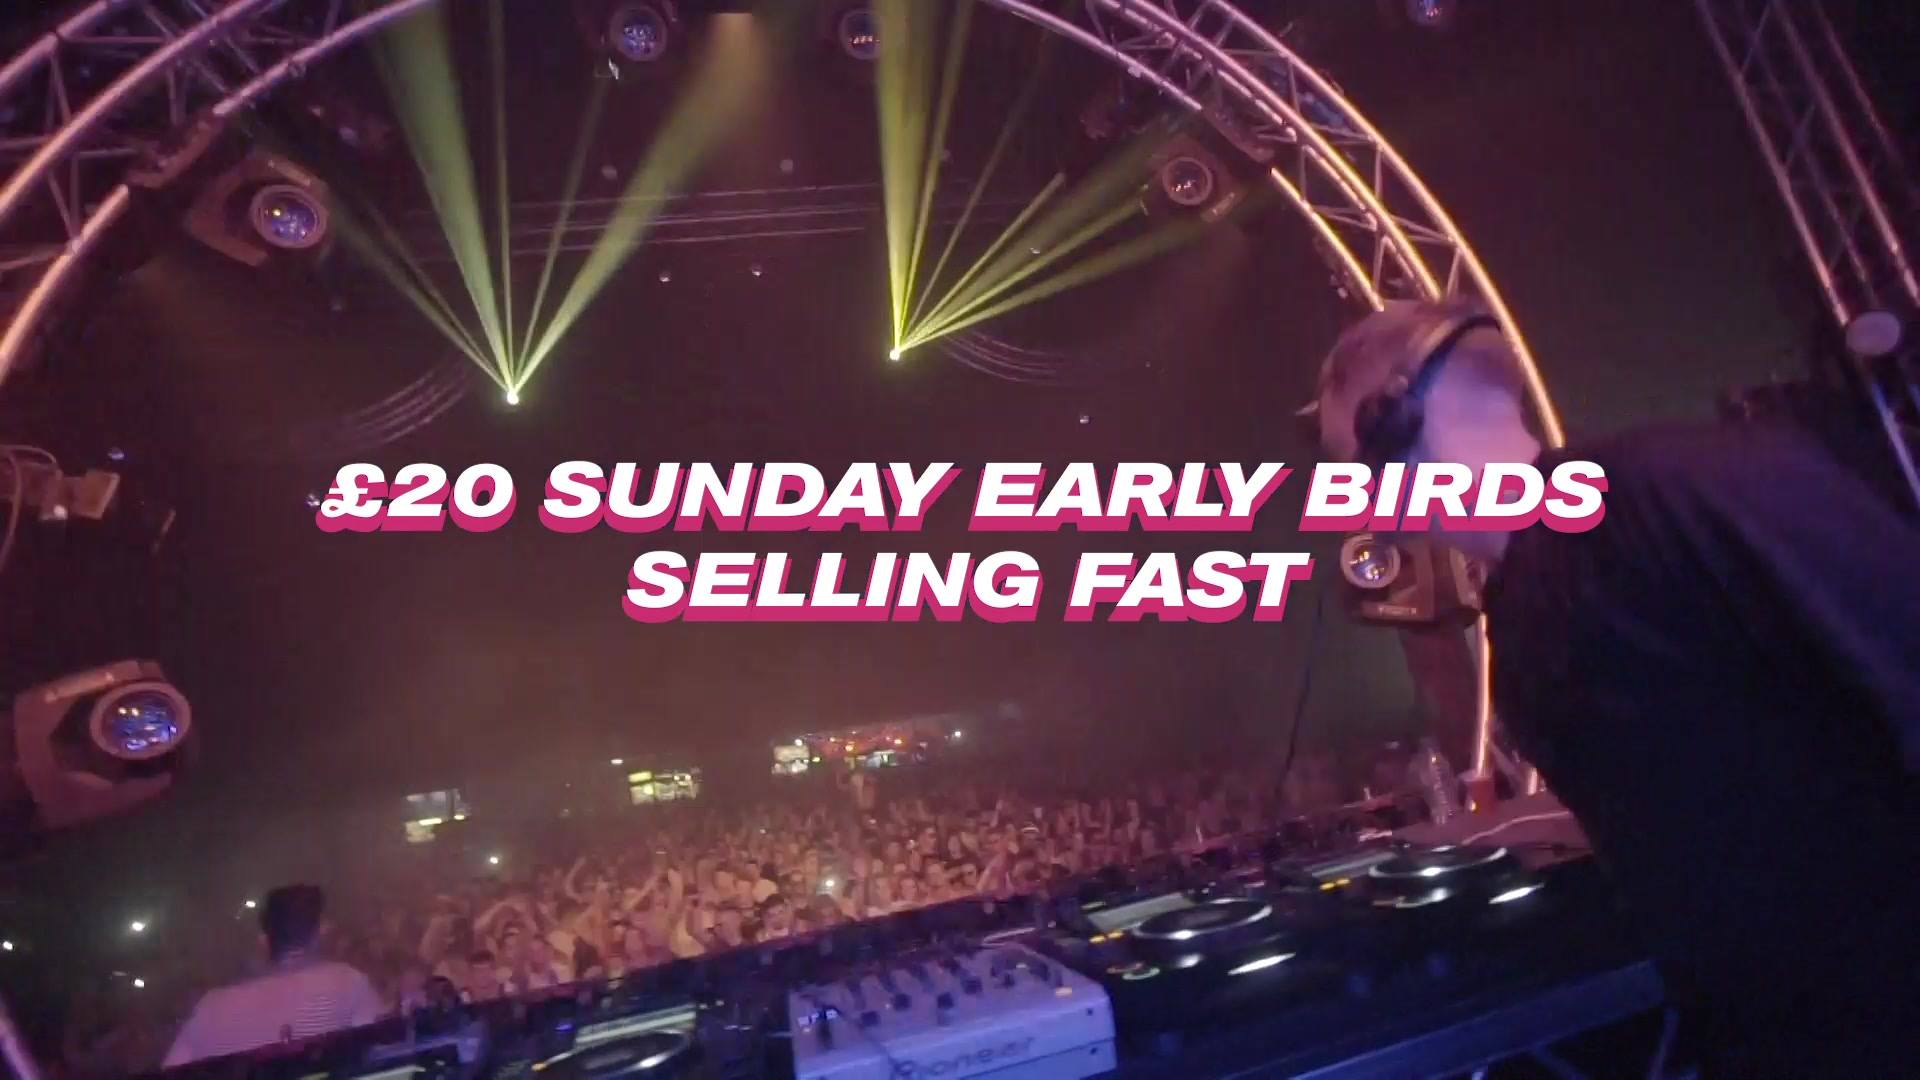 Sunday earlybirds are moving quickly and £29.95 Saturday earlybirds move up to £...